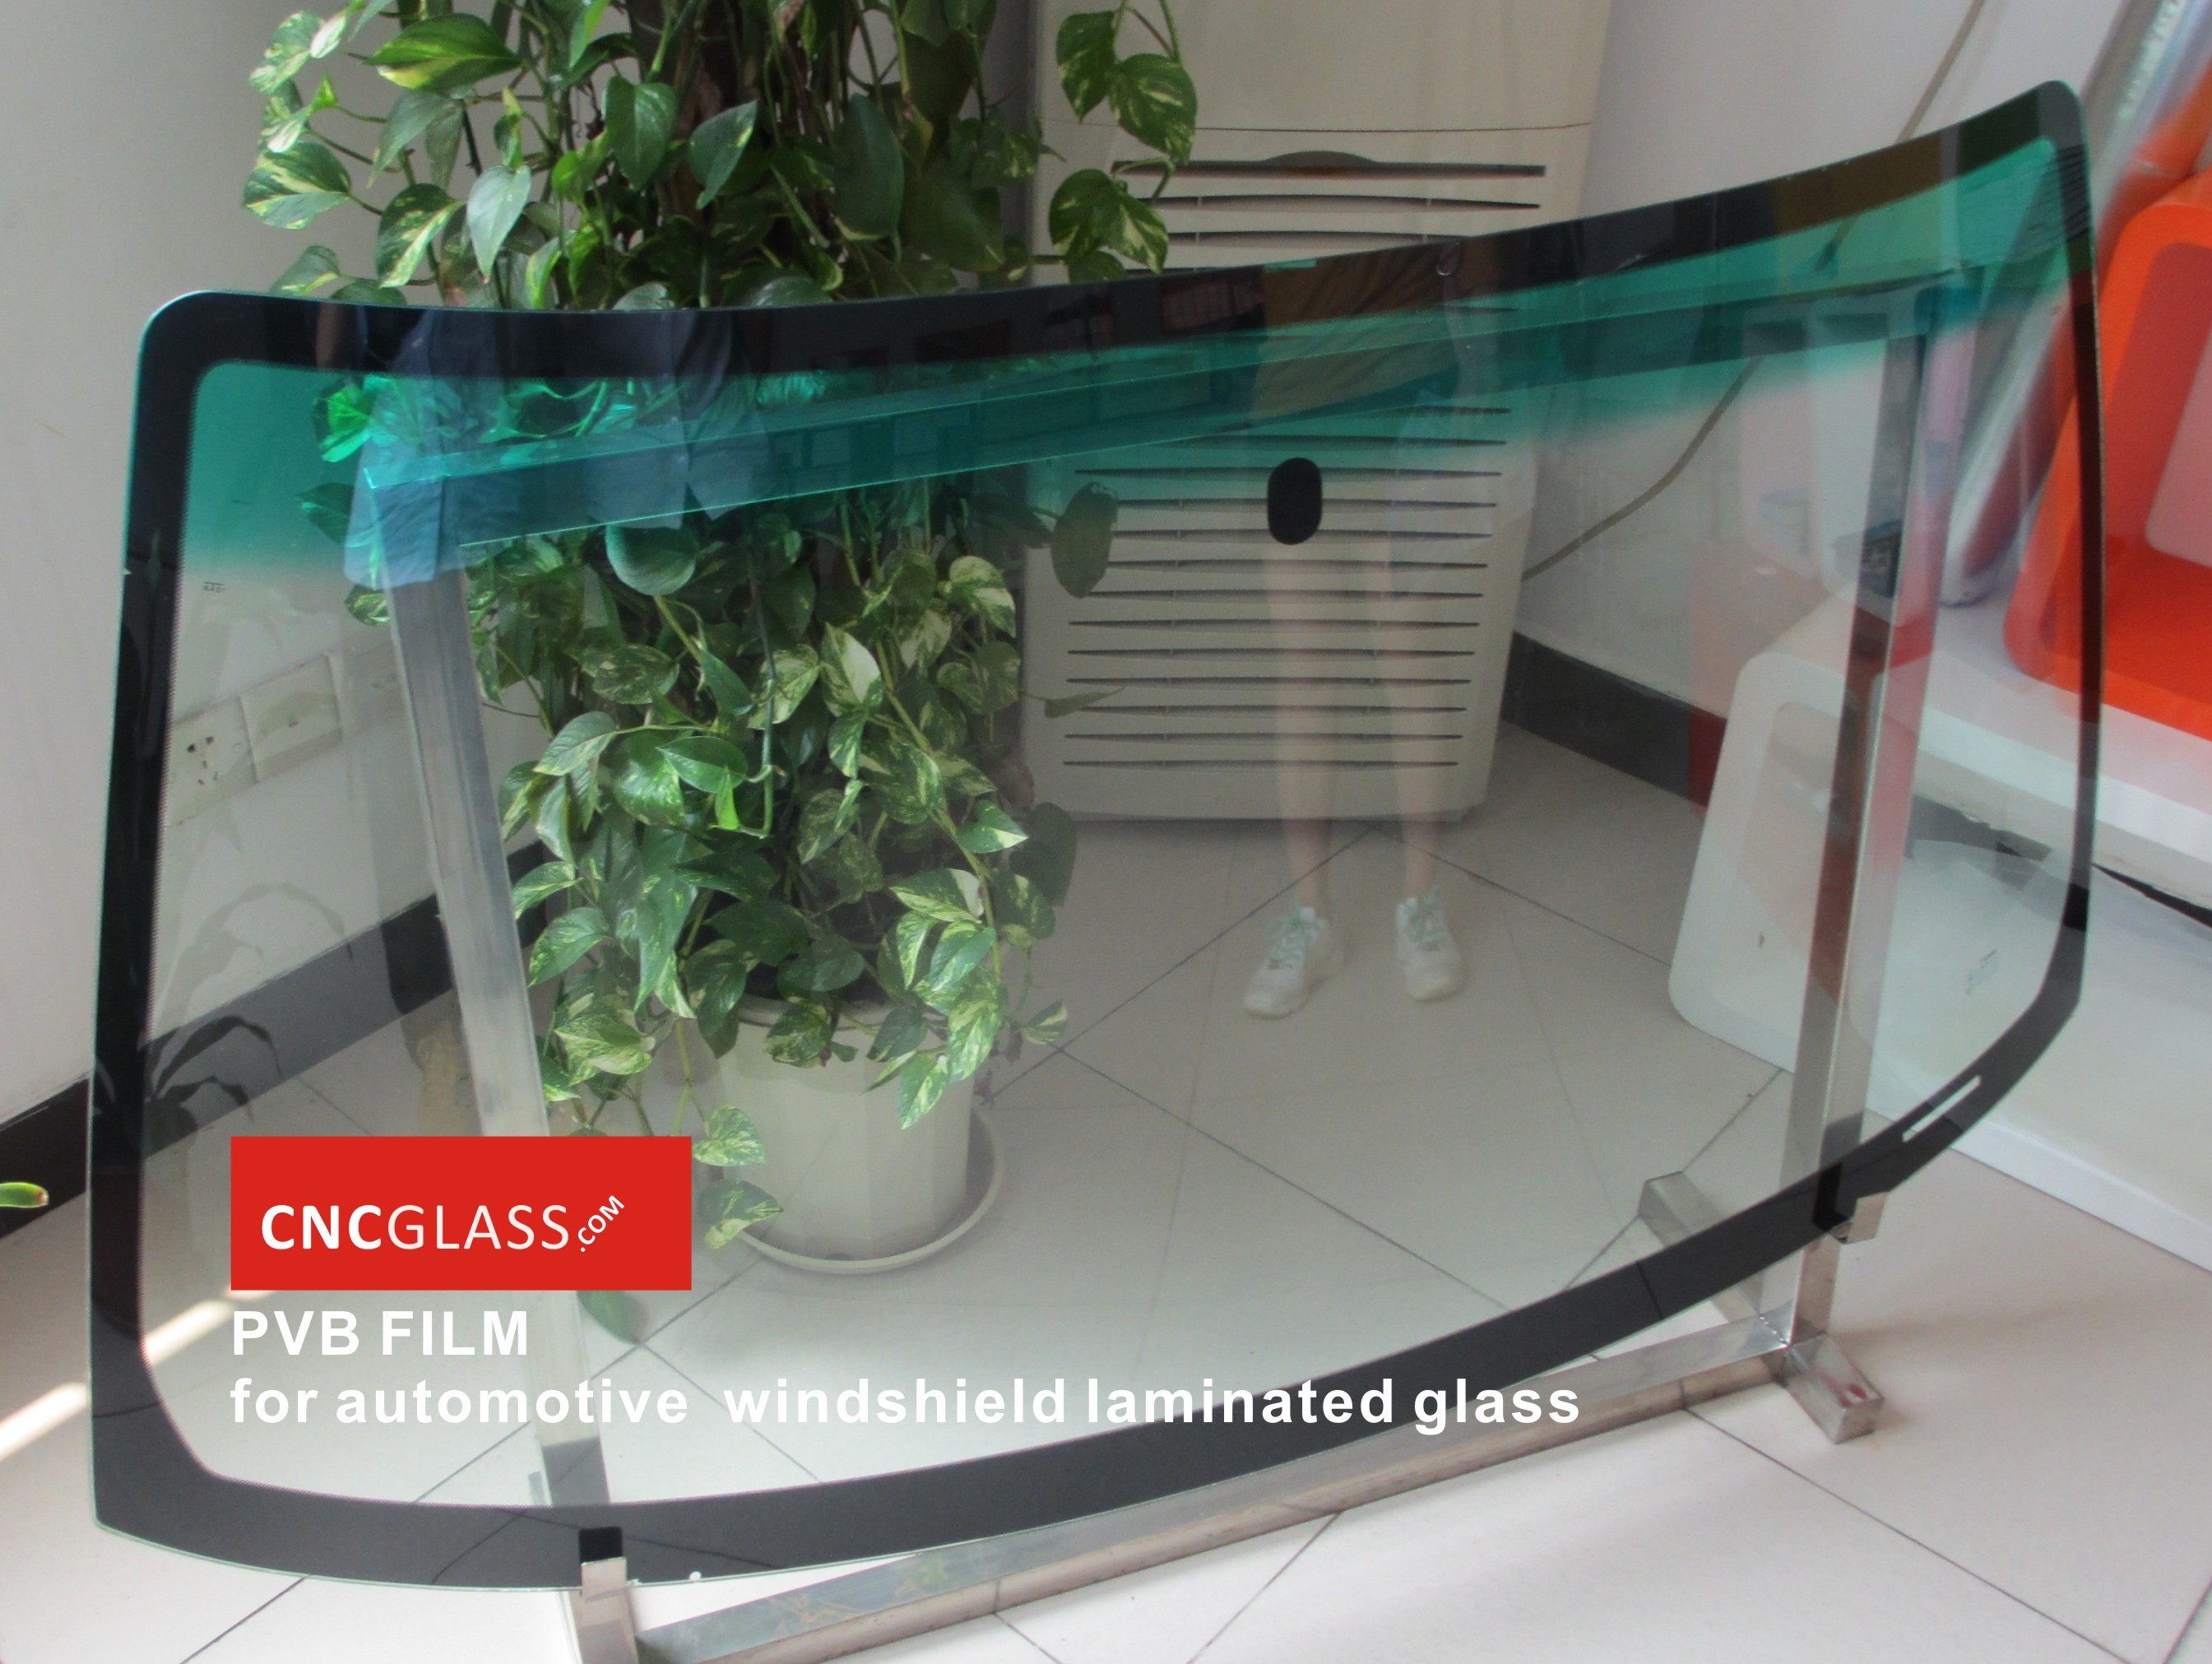 PVB FILM for automotive windshield laminated glass (2)